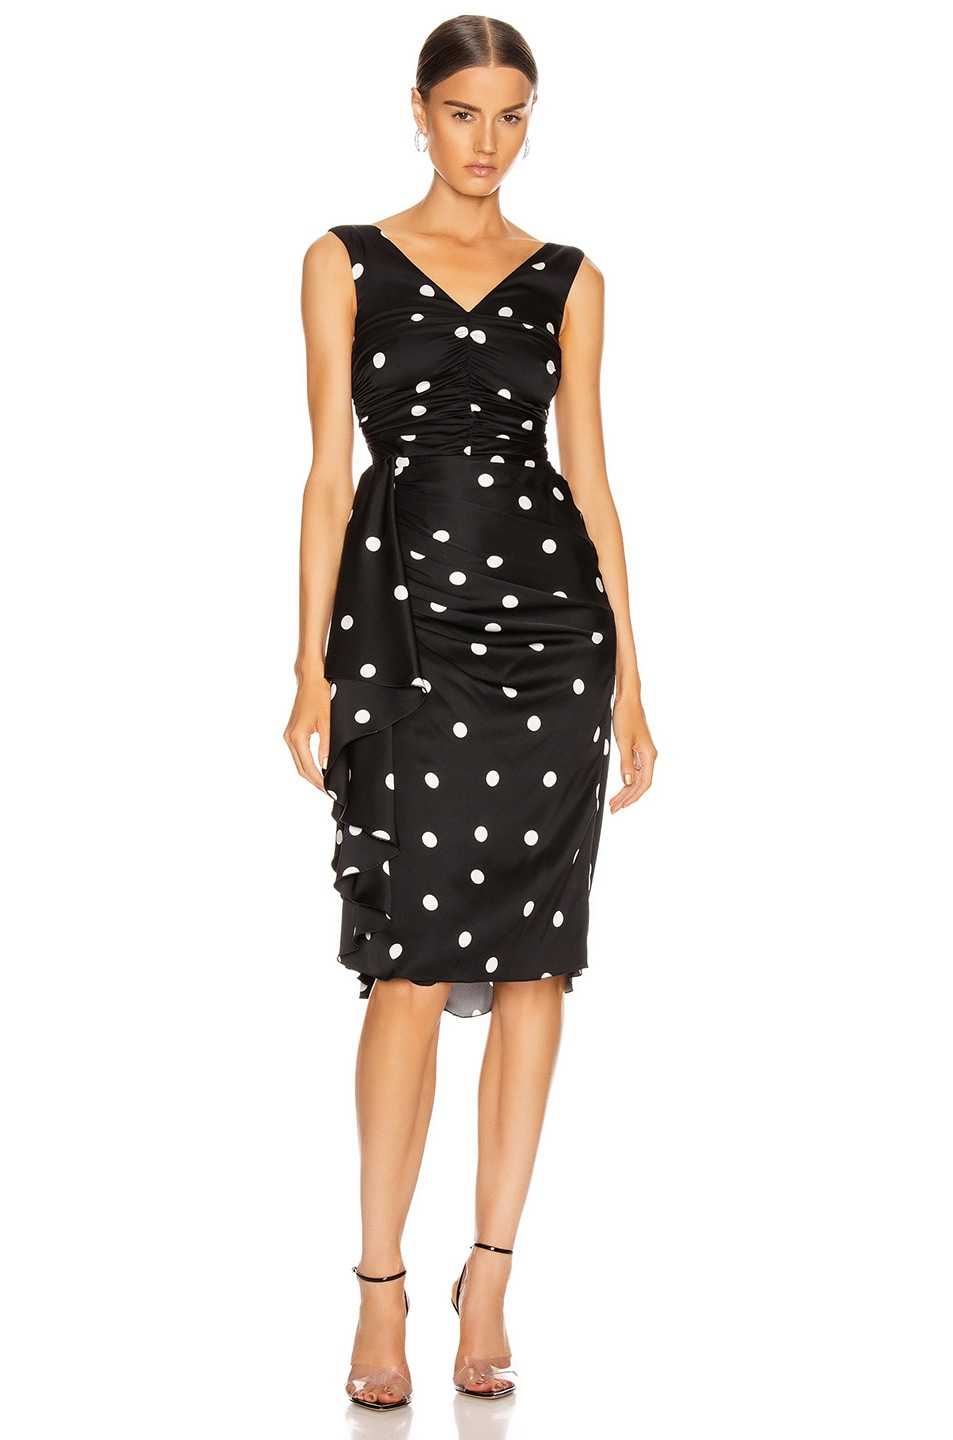 Image 1 of Dolce & Gabbana Polka Dots Dress in Black